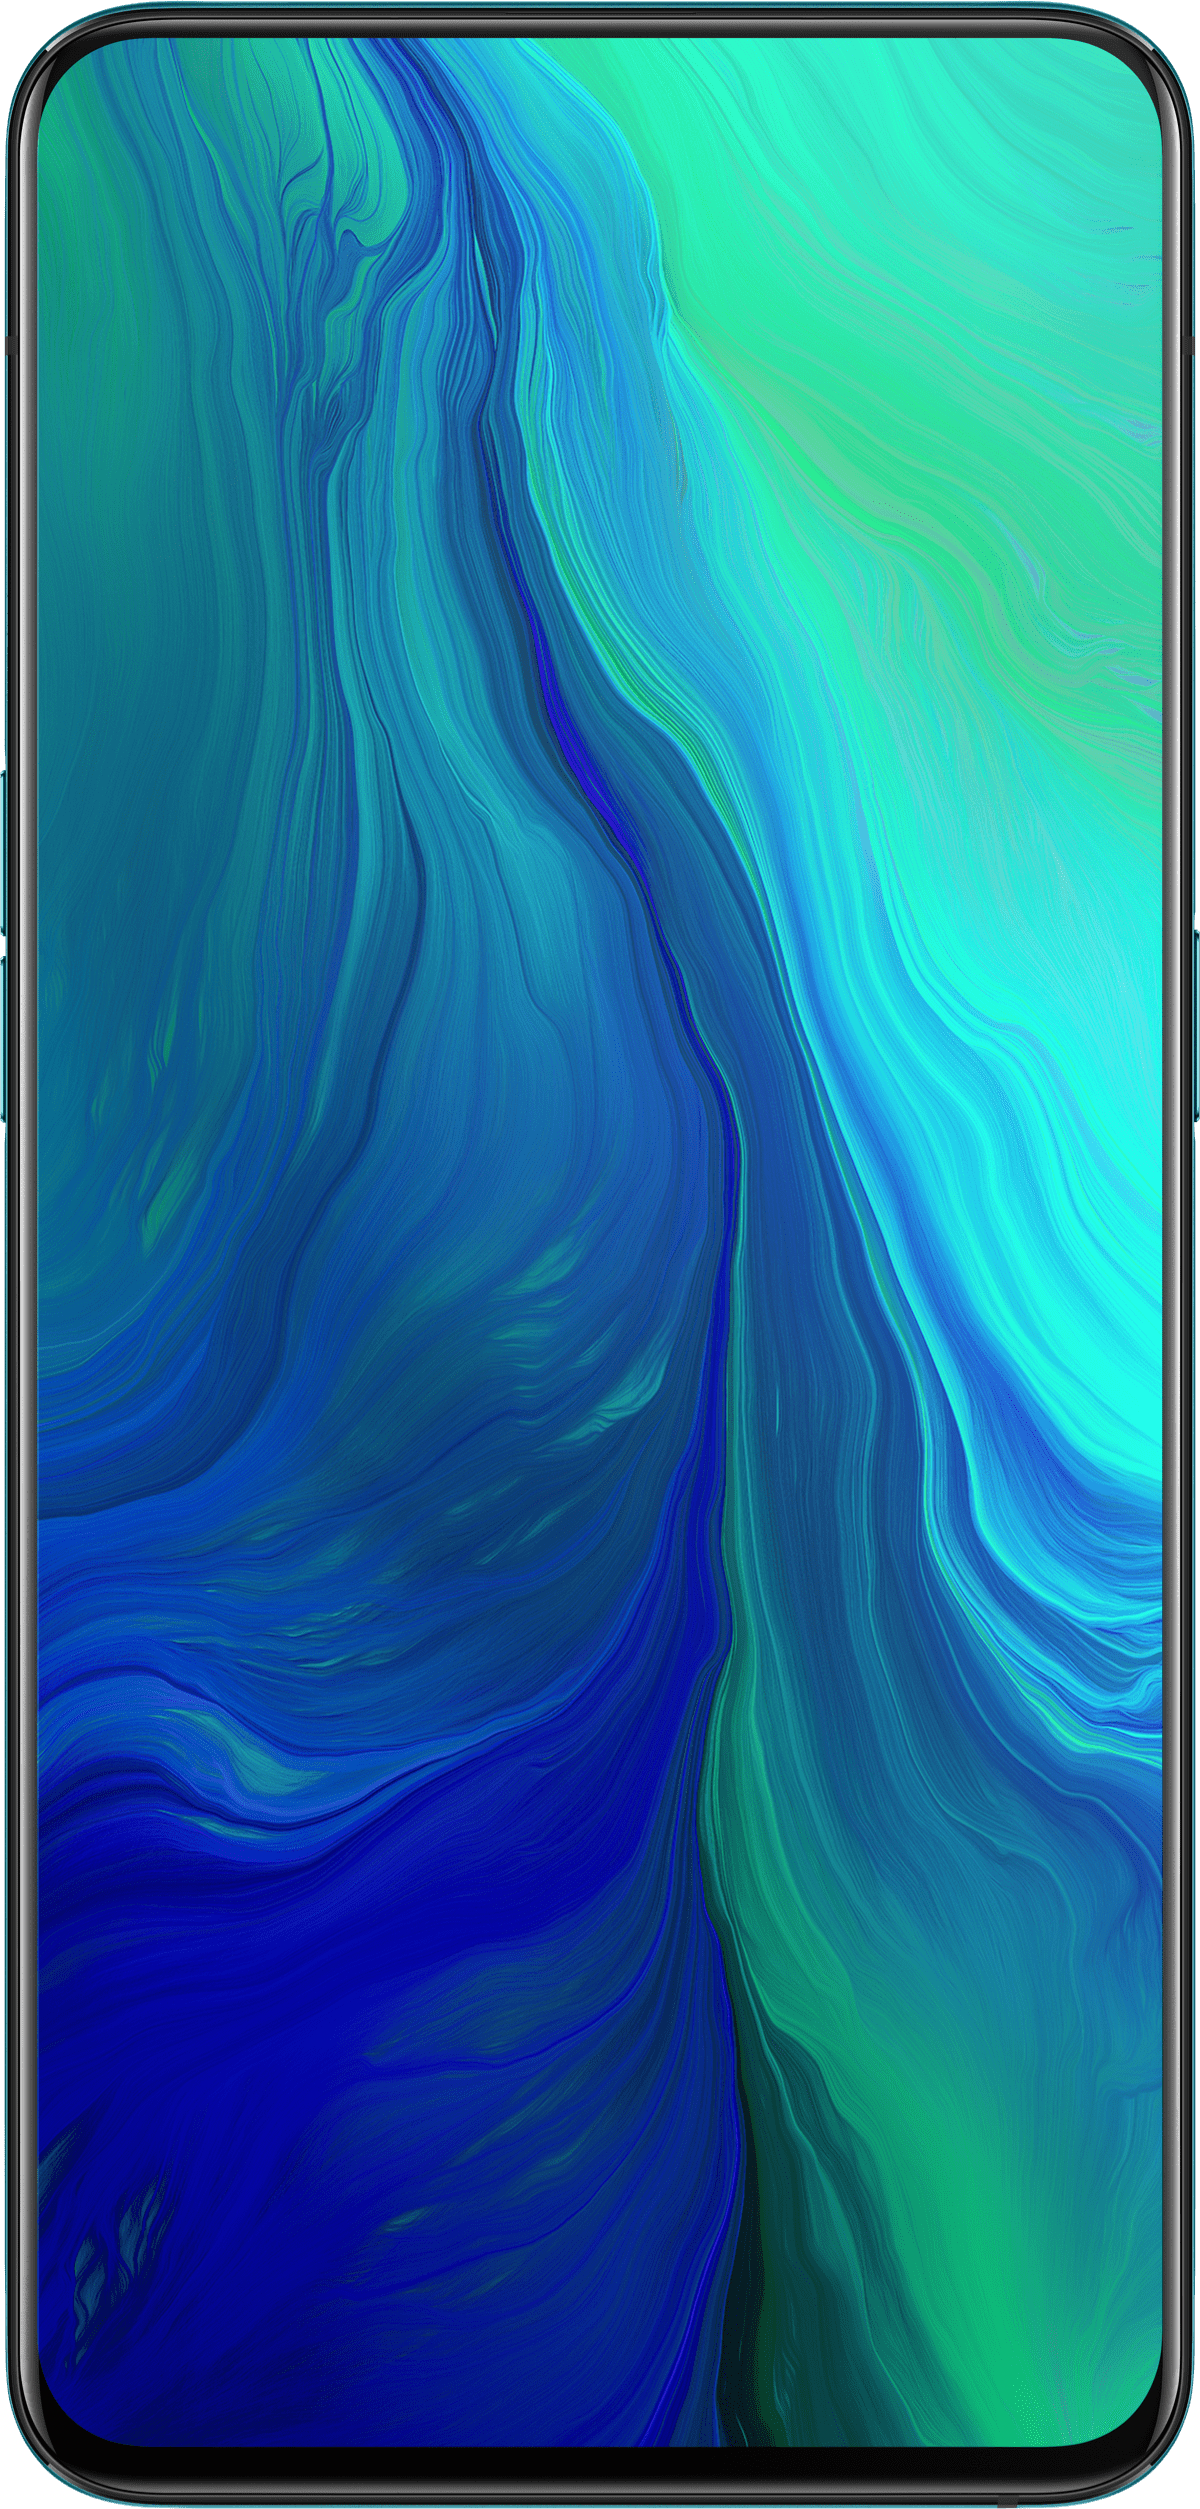 OPPO Reno 5G - panoramic screen